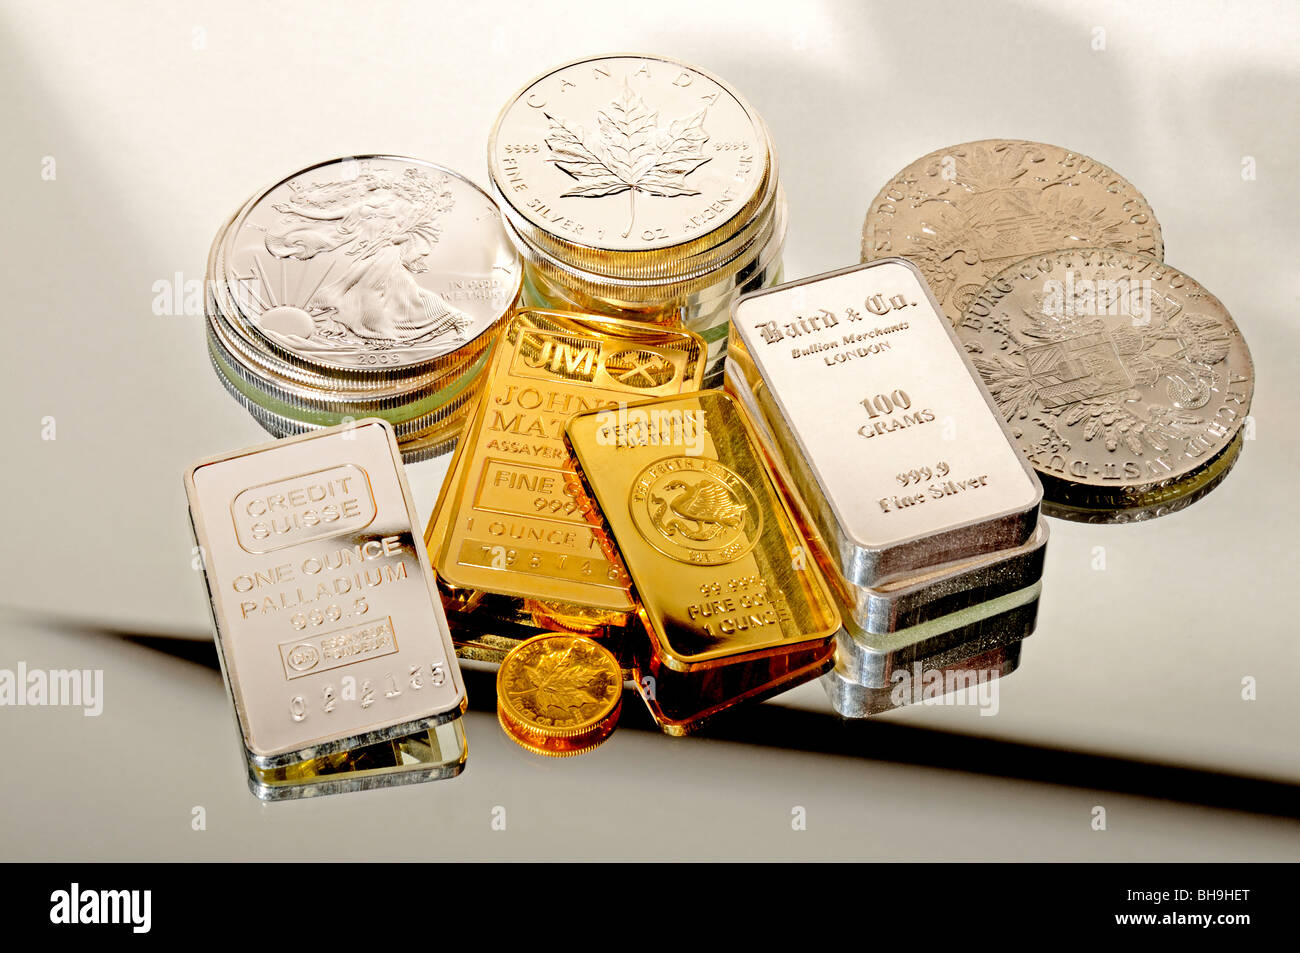 Gold, Silver and Palladium bullion in coins and bars - Stock Image